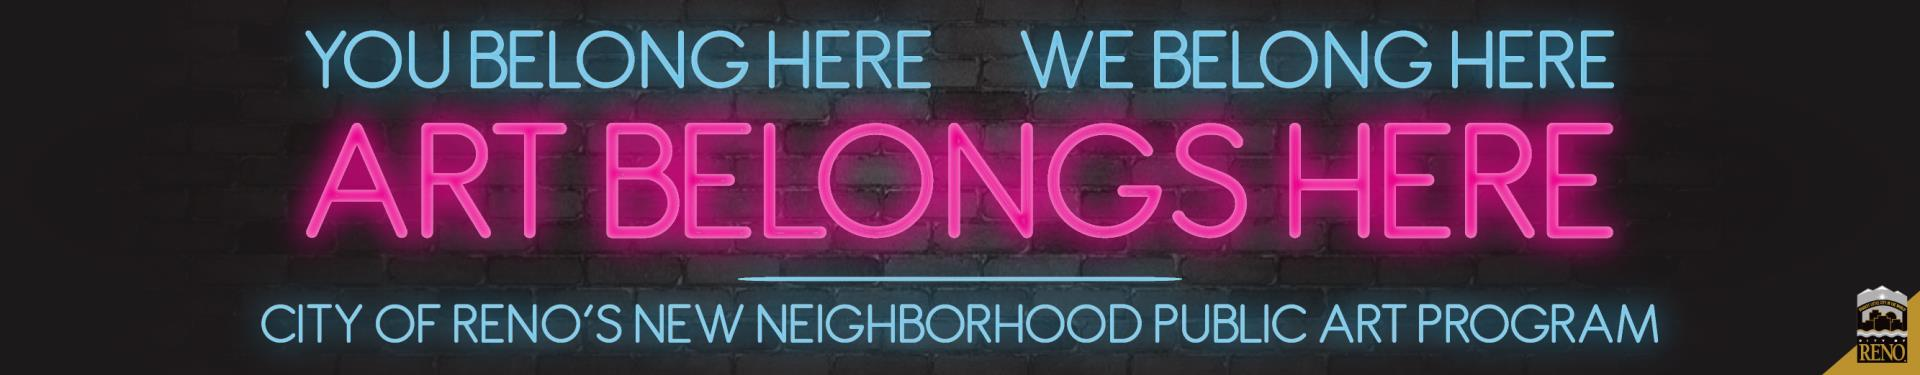 Neon text that reads: You belong here, we belong here, art belongs here. City of Reno's new neighborhood public art program.